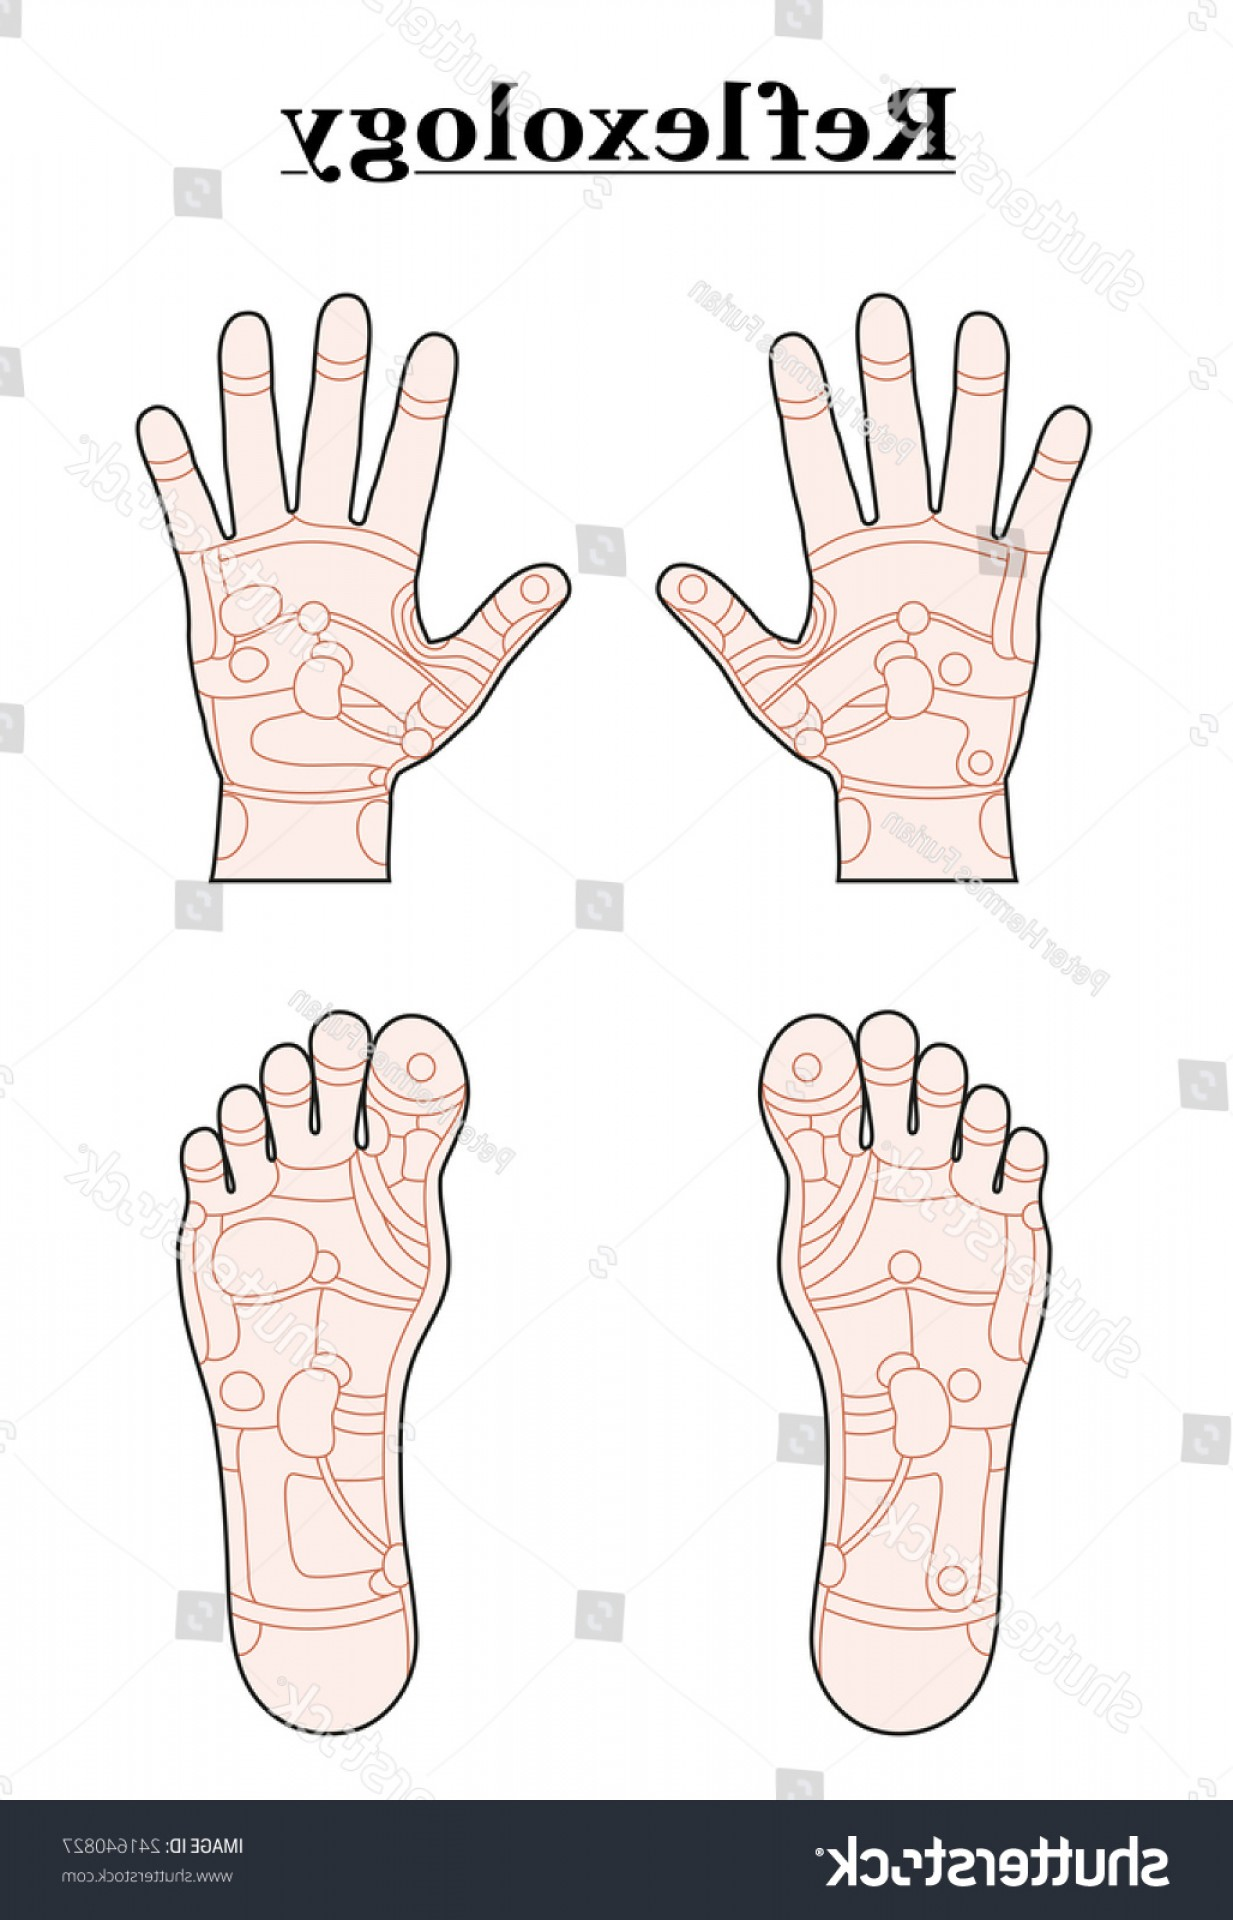 Vector Travel Cooler Parts: Hands Feet Divided Into Reflexology Areas